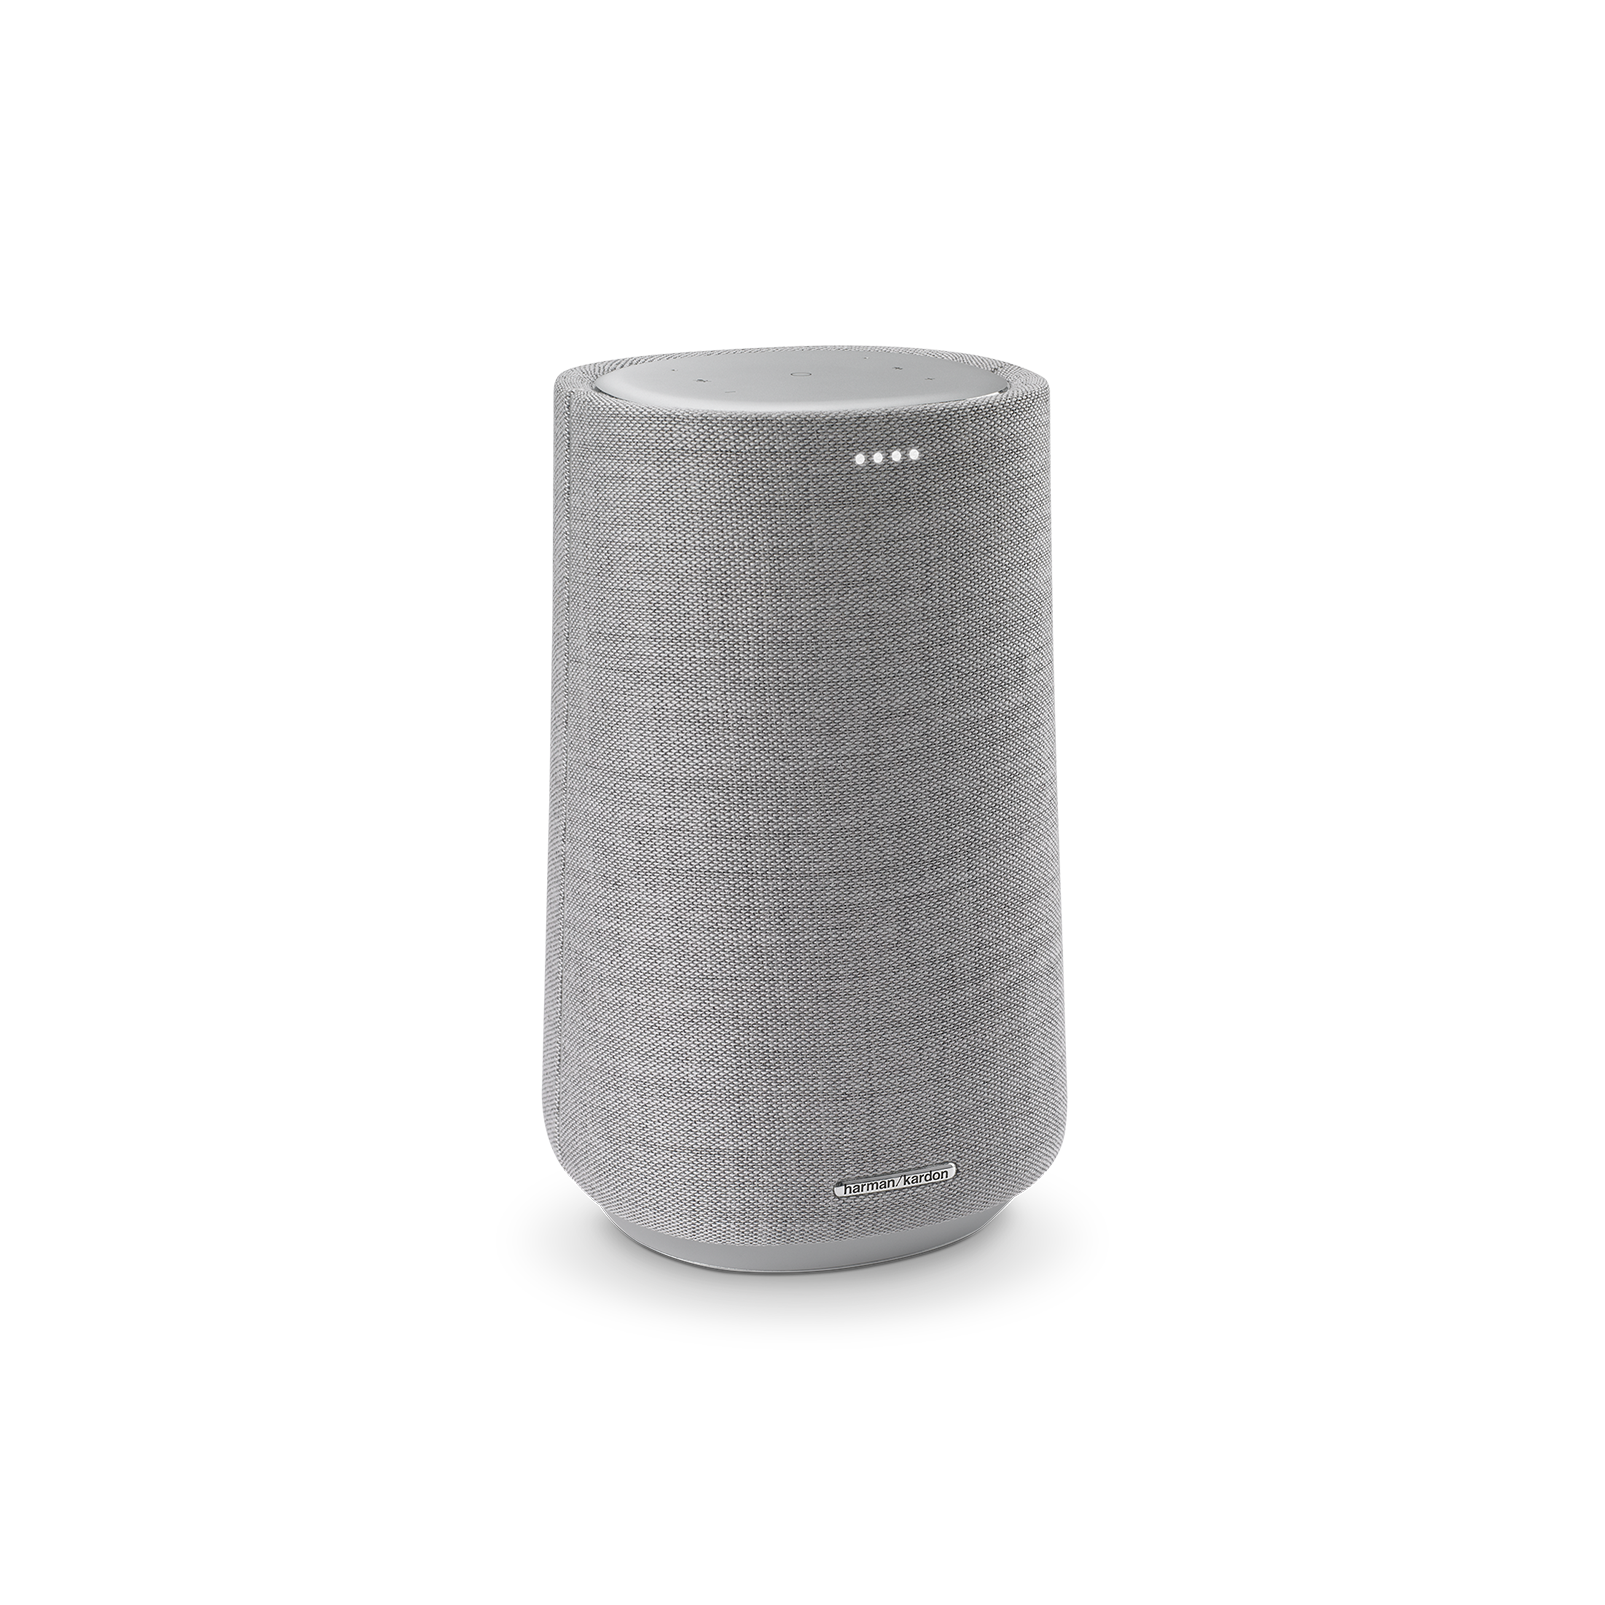 Harman Kardon Citation 100 - Grey - The smallest, smartest home speaker with impactful sound - Hero